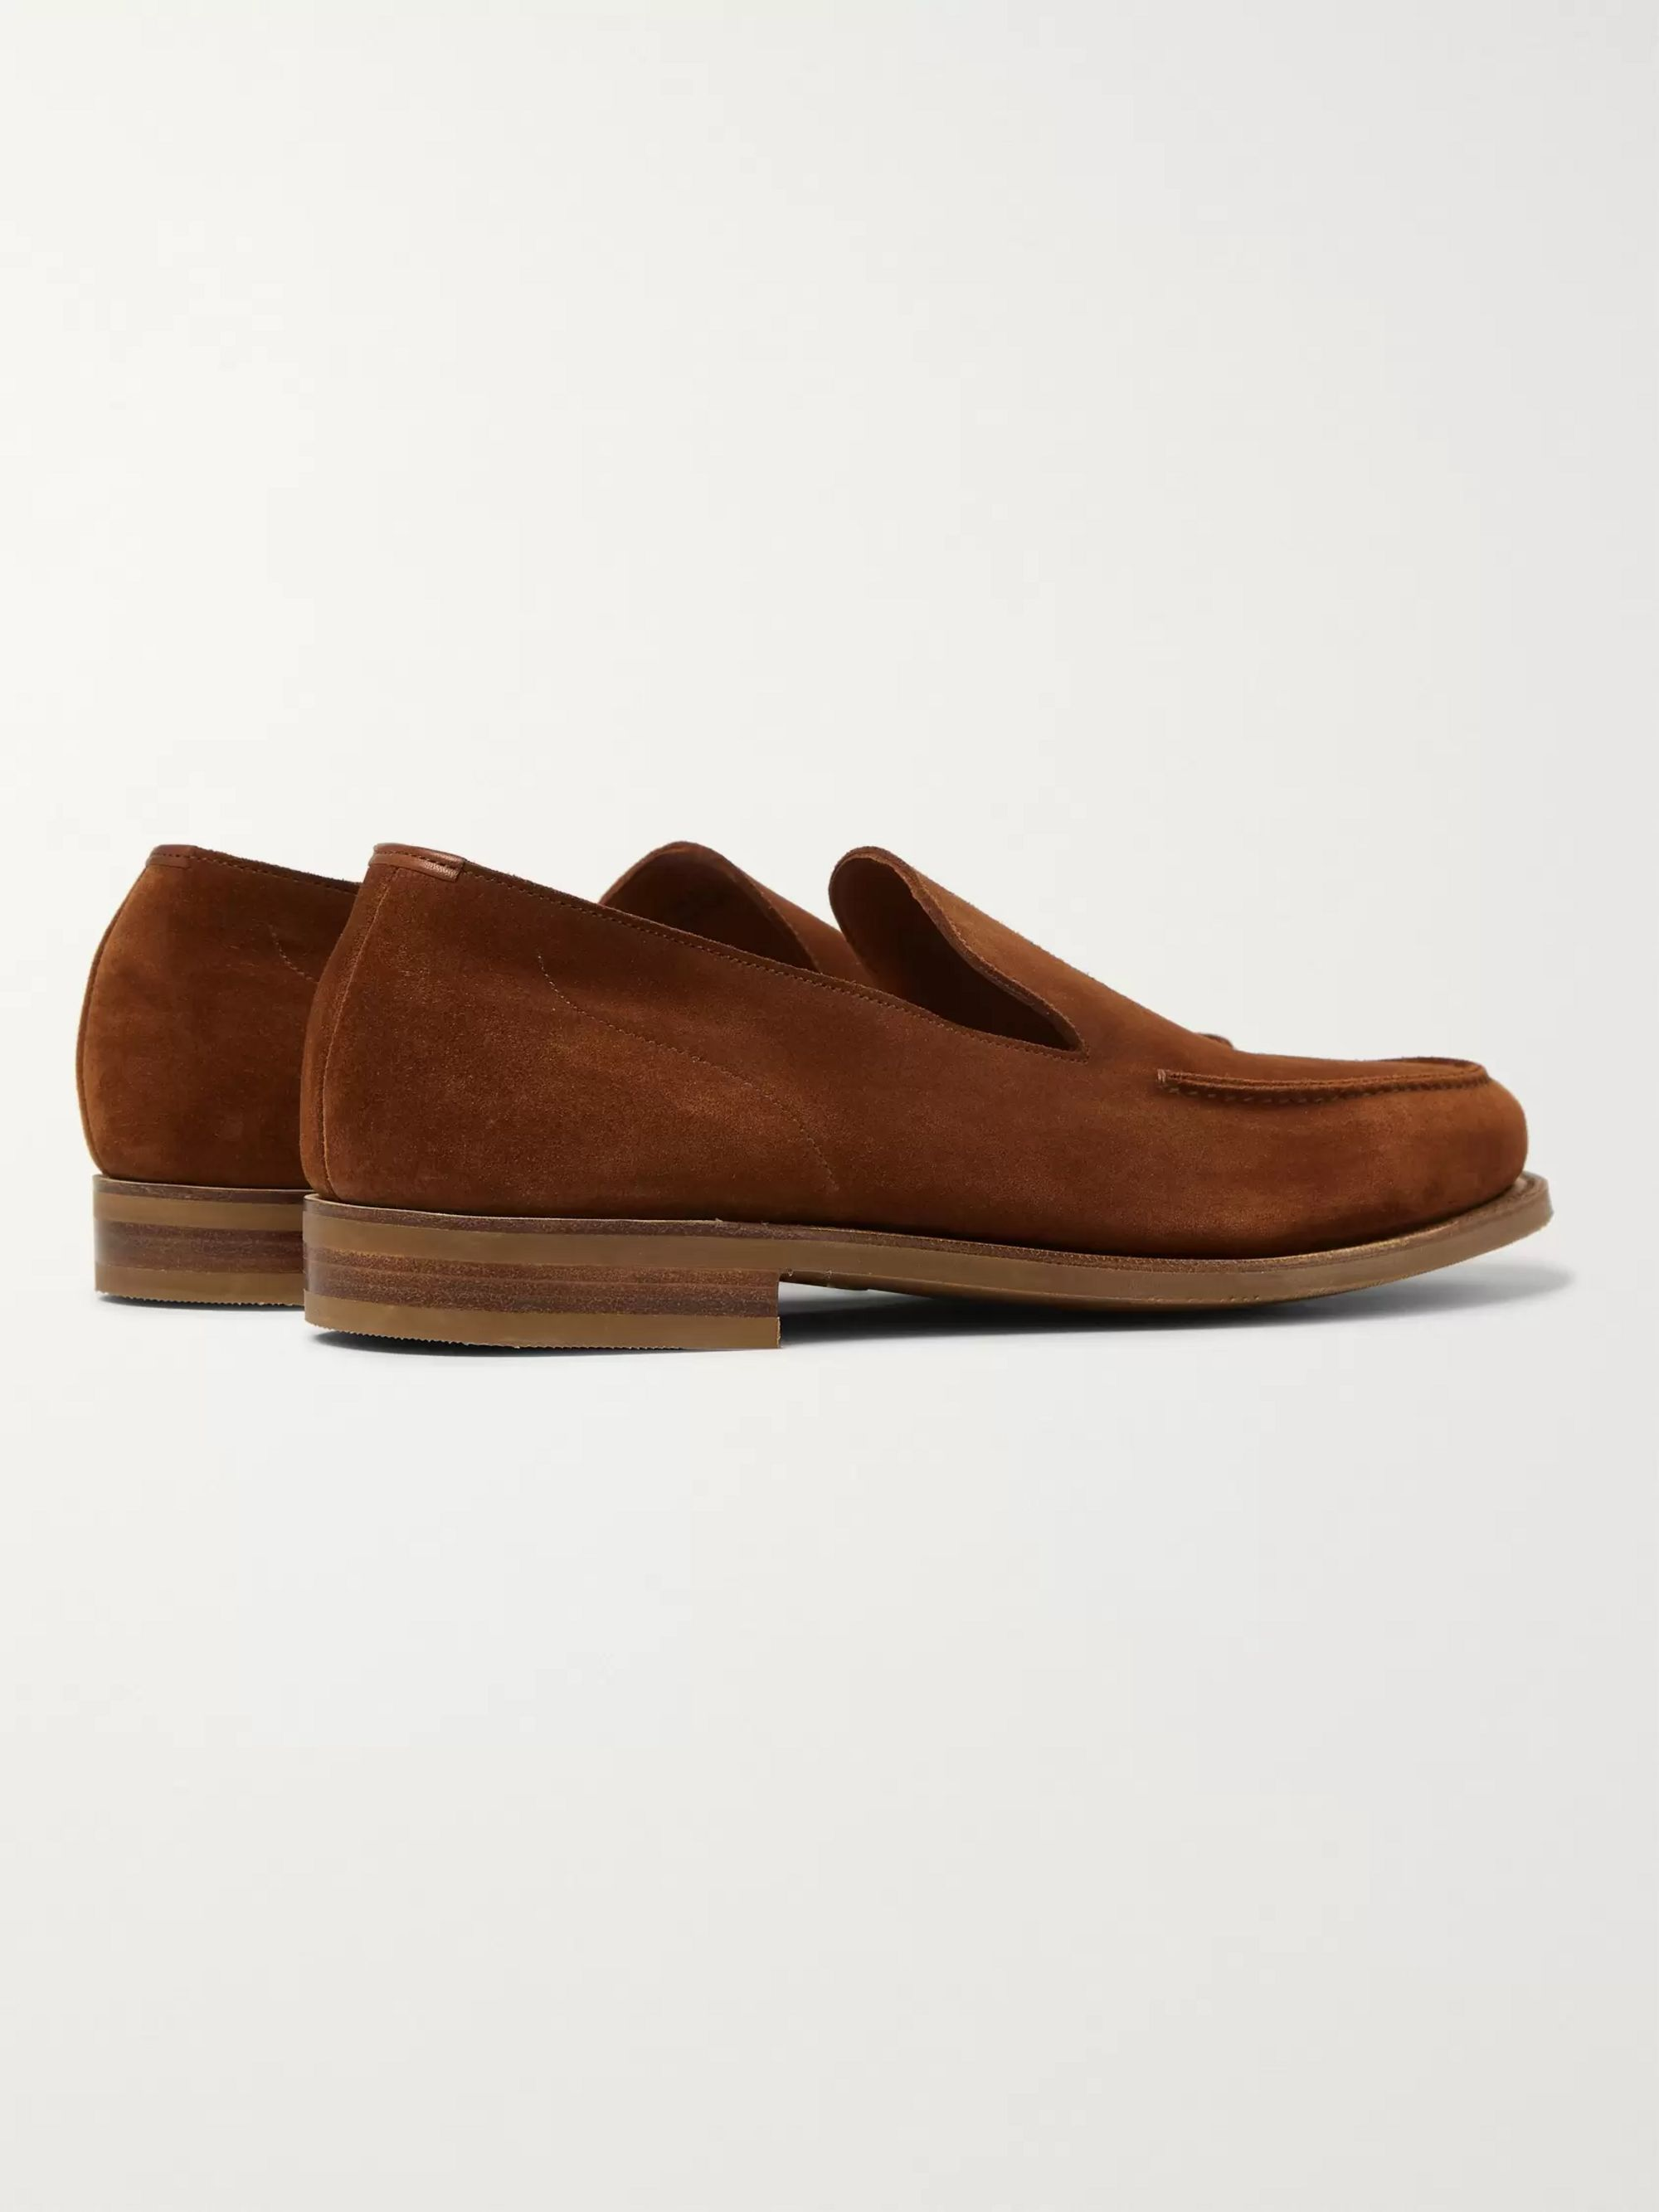 Edward Green Islington Suede Loafers